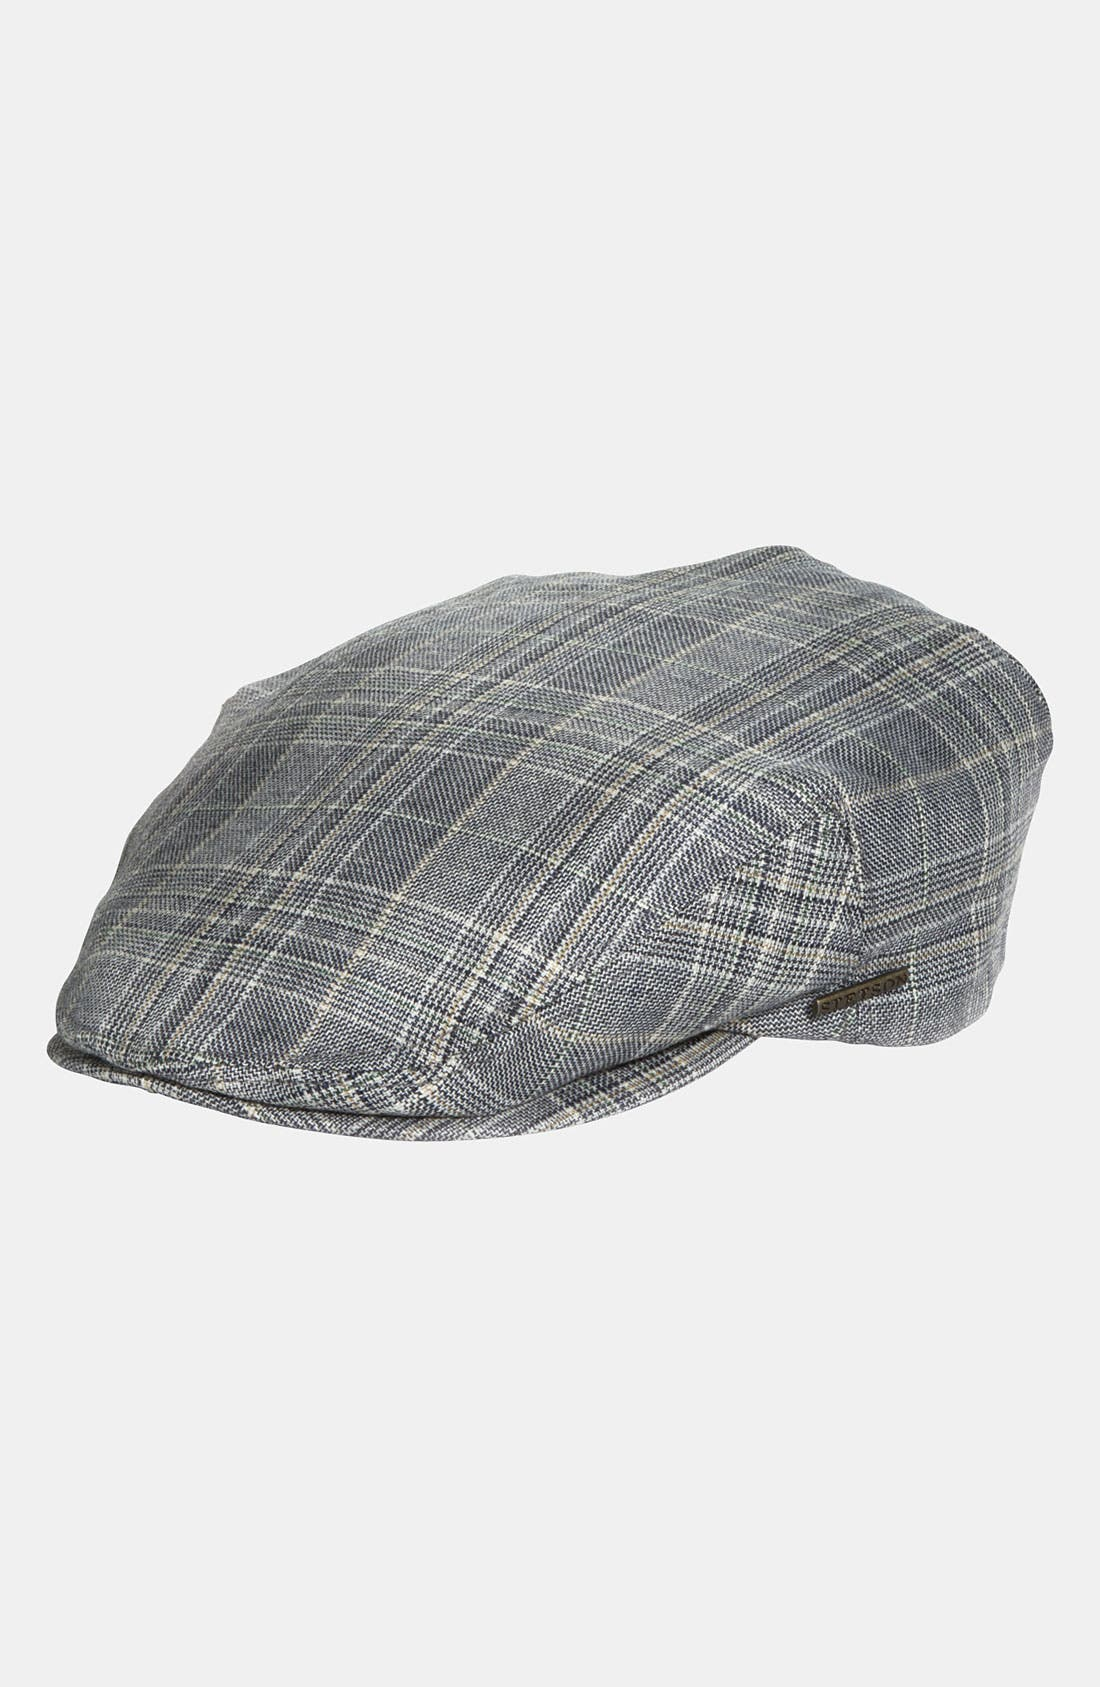 Alternate Image 1 Selected - Stetson 'Tropical' Driving Cap